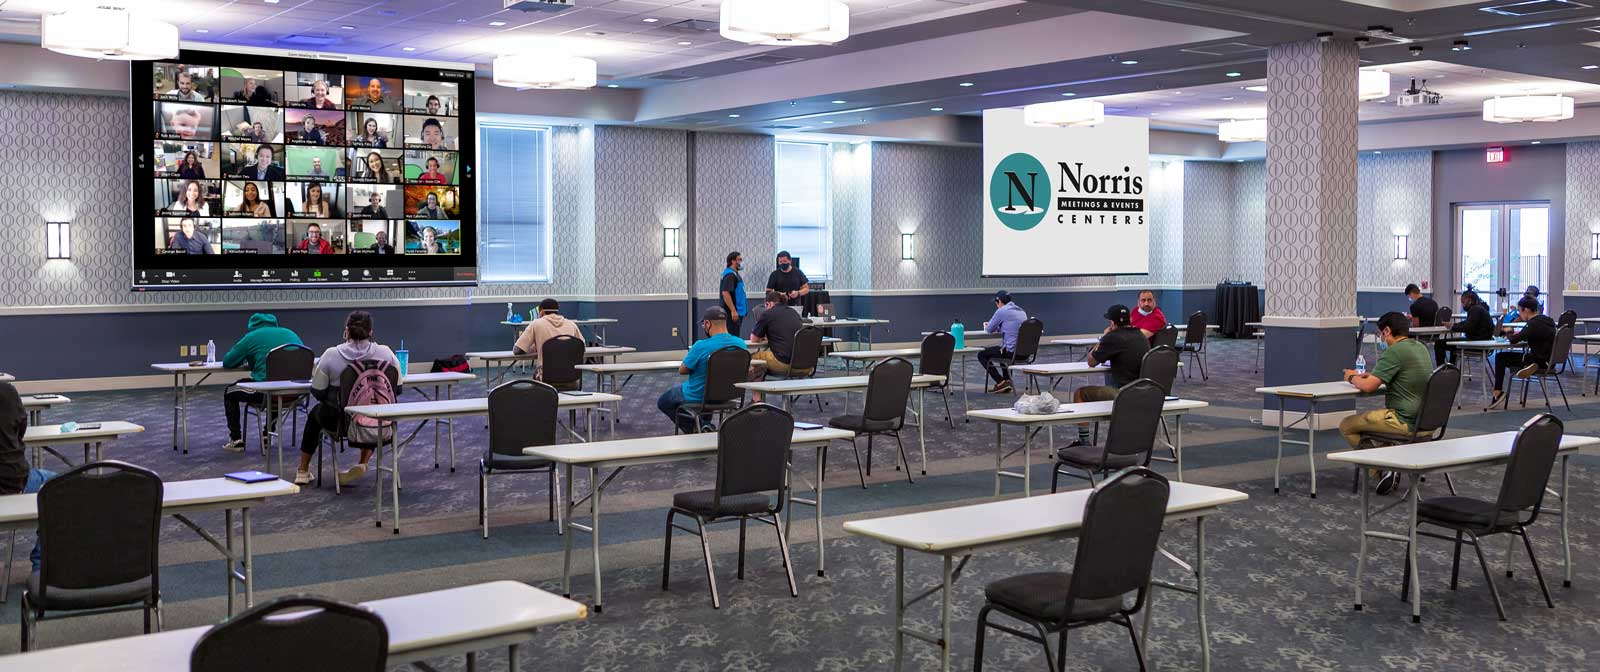 Norris Centers, Zoom and Hybrid Meeting for COVID-19